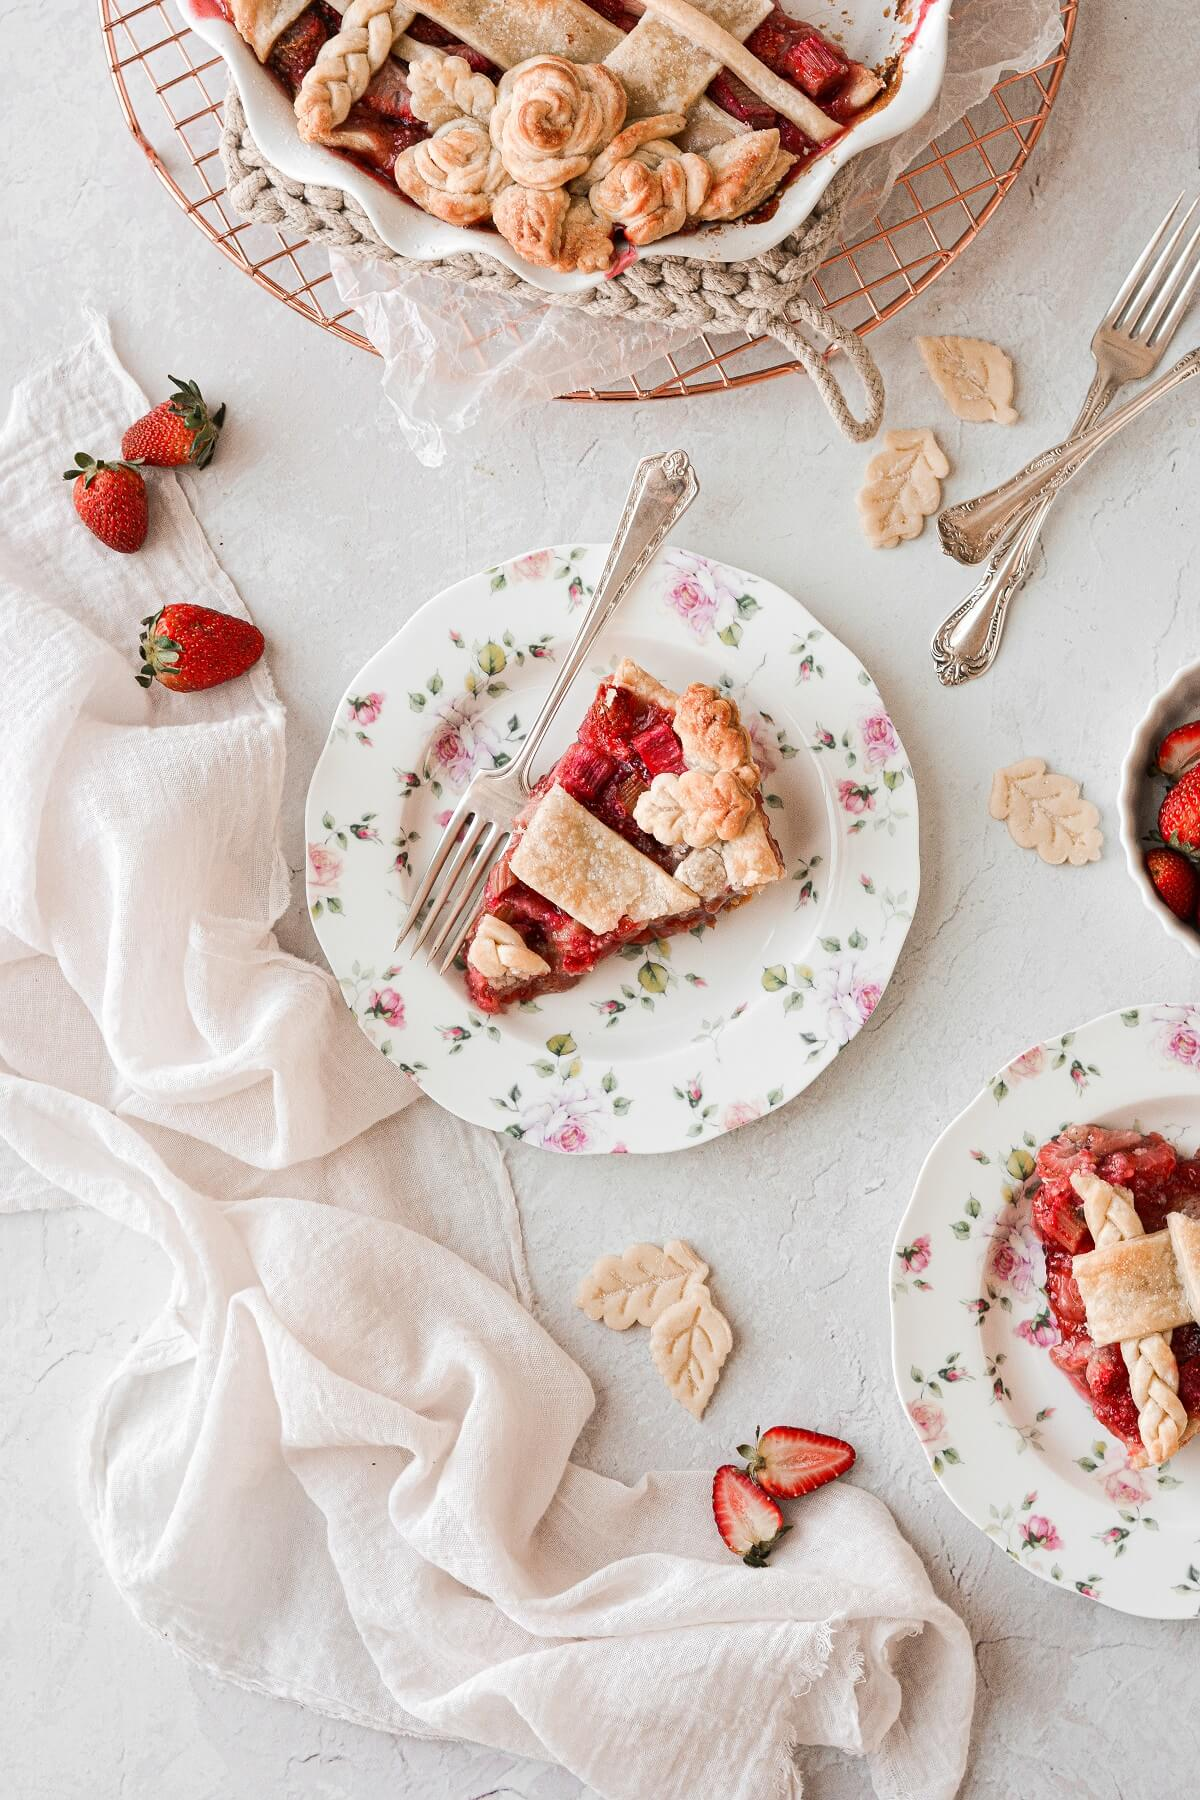 Slices of strawberry rhubarb pie, on flowered plates.